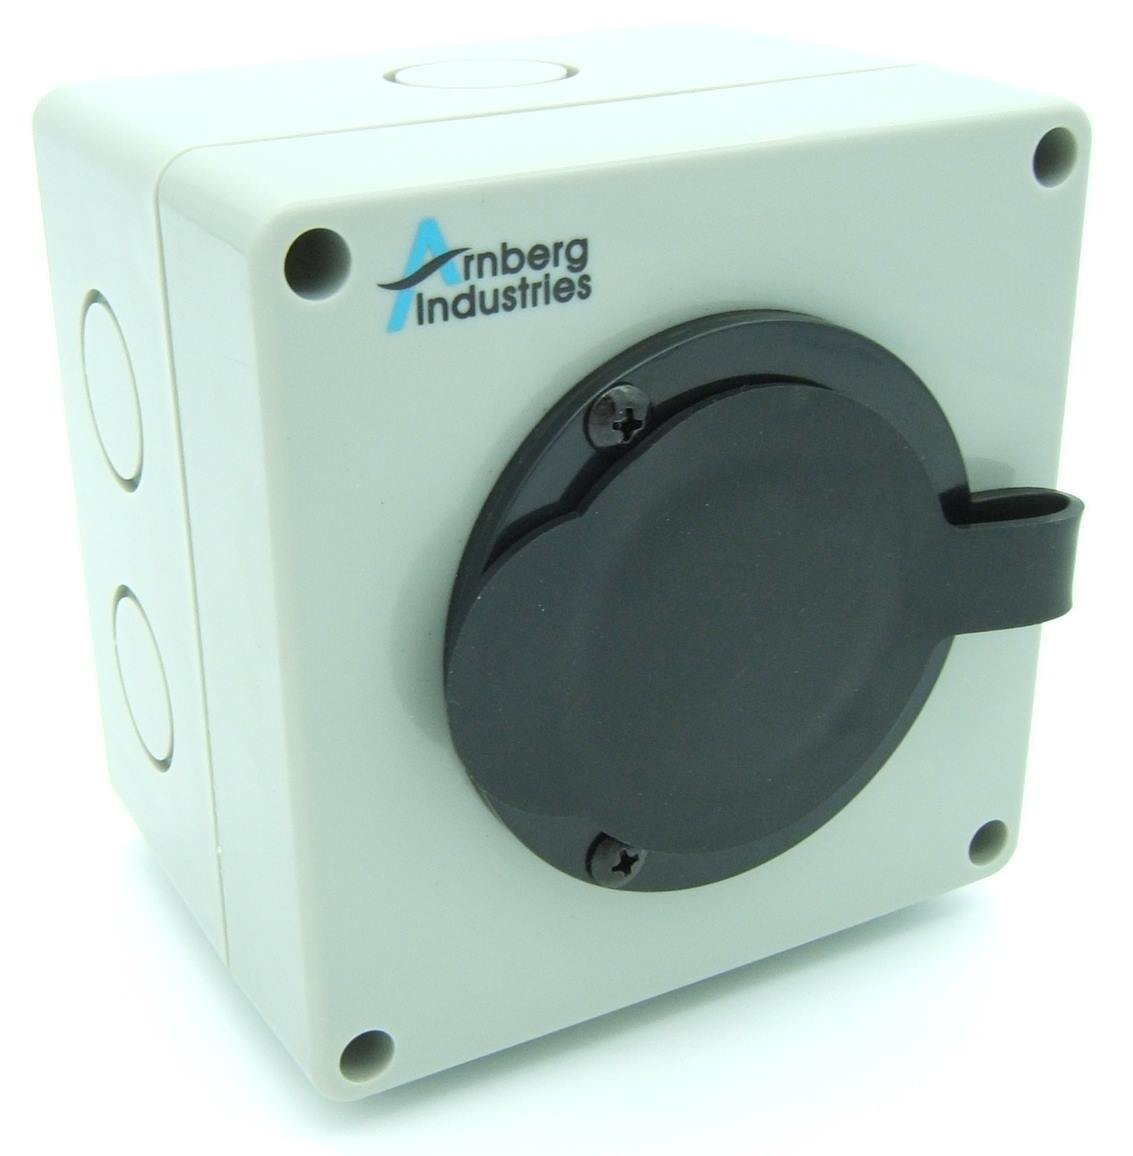 30 Amp Generator Inlet Box Ai Pb30 Power Cord Twist Lock Receptacle Wiring A L1430 Plug For Transfer Switches